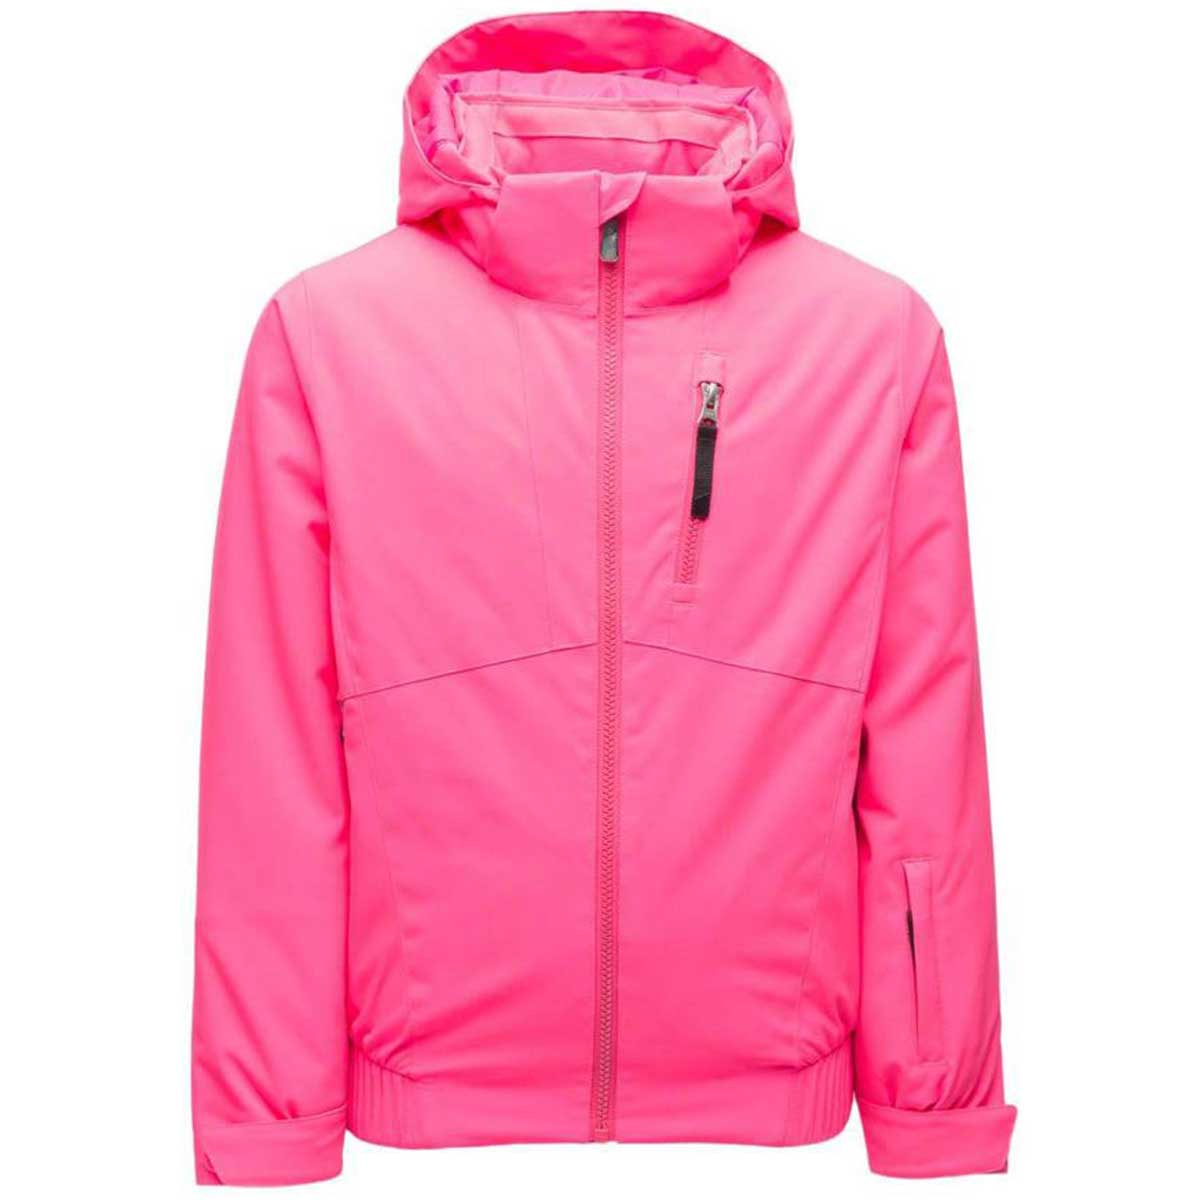 Spyder Girls' Lola Jacket in Bryte Bubblegum front view